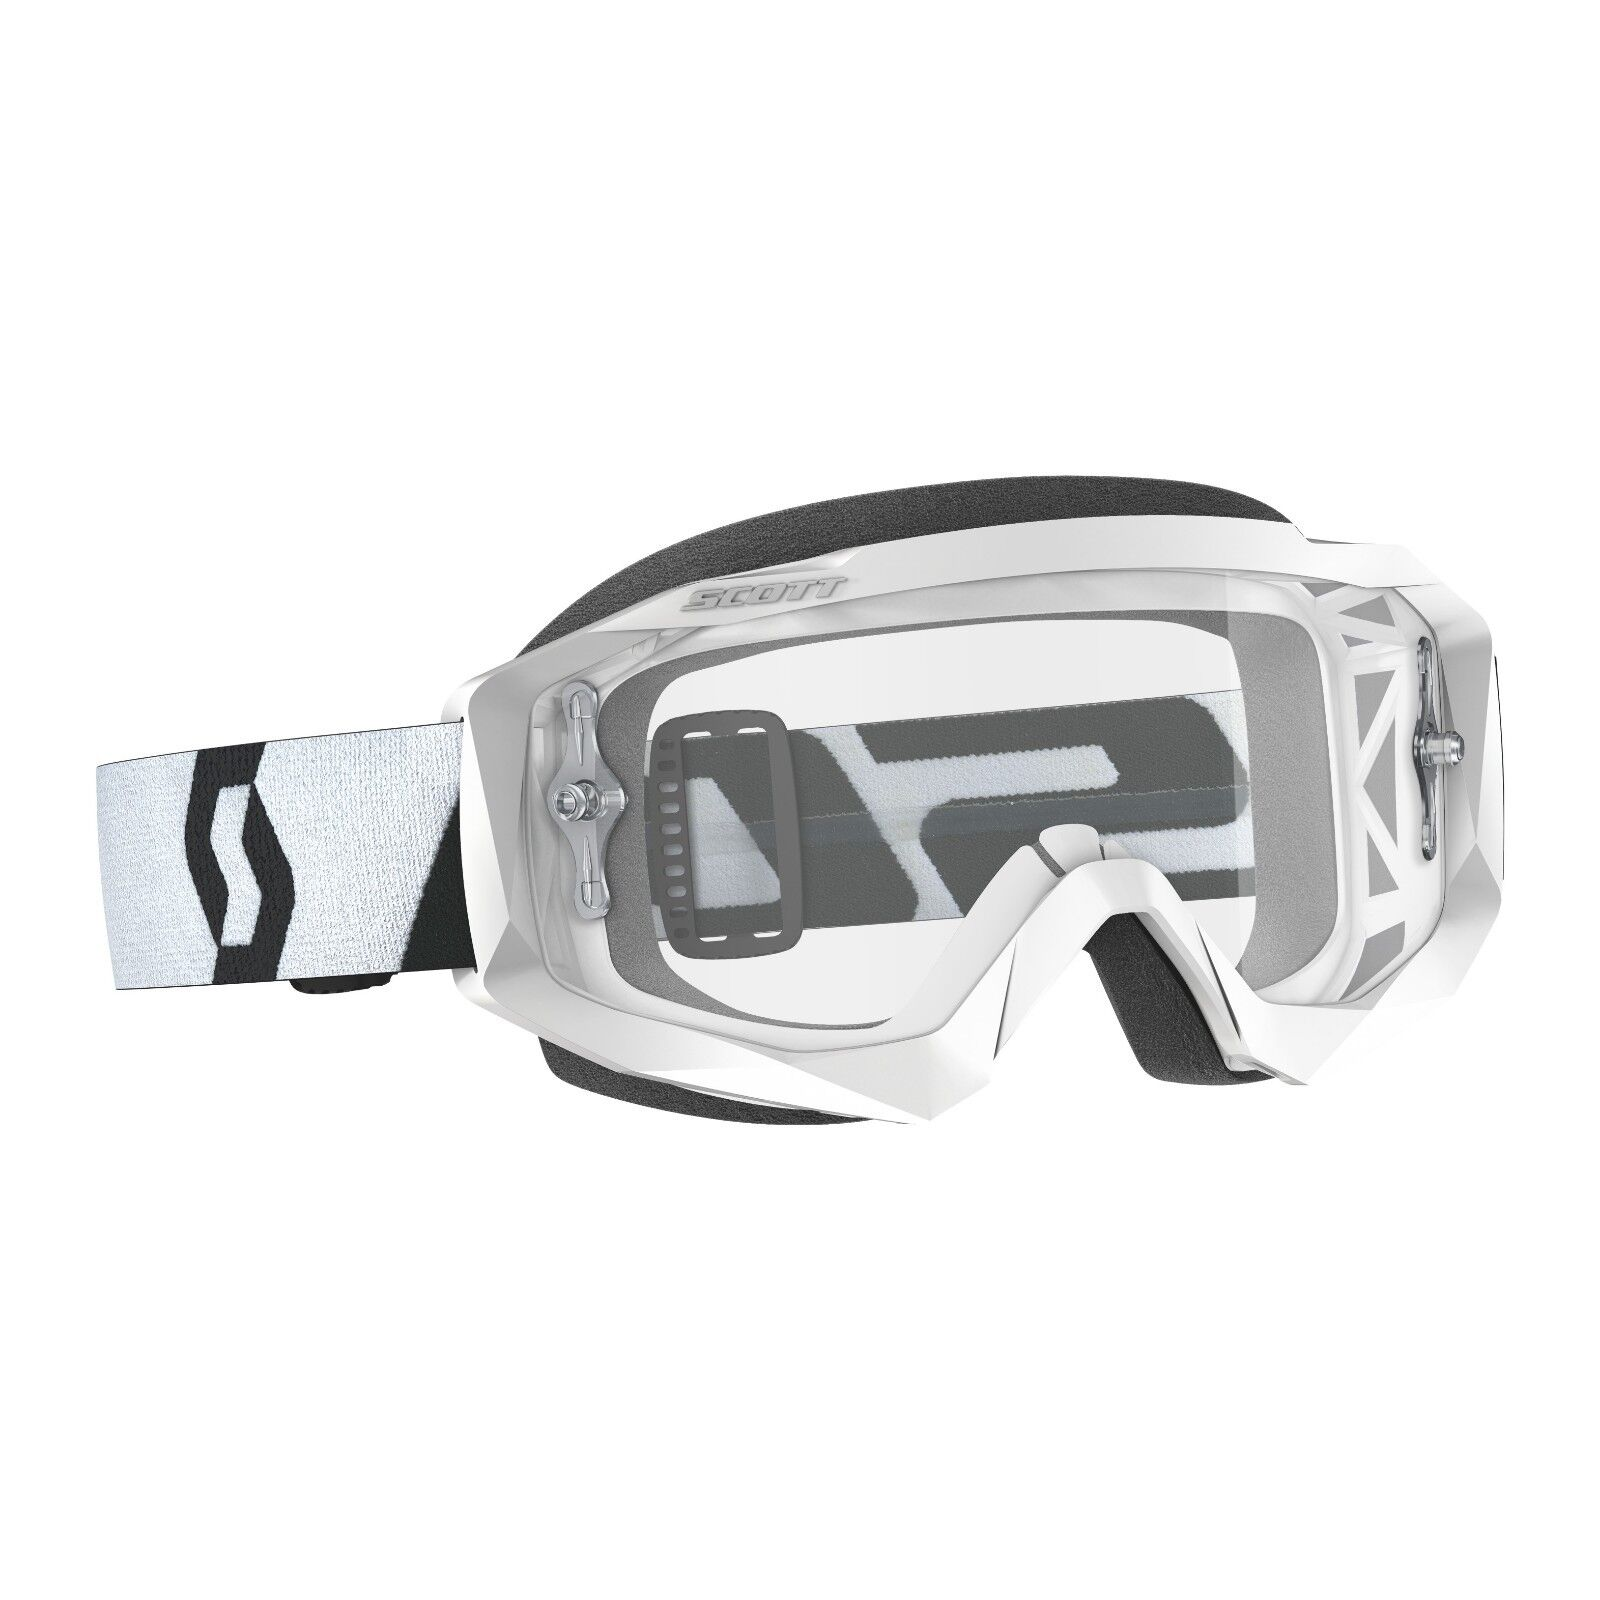 Rip n roll yellow tear off replacement lens for Scott Hustle//Tyrant bike goggles